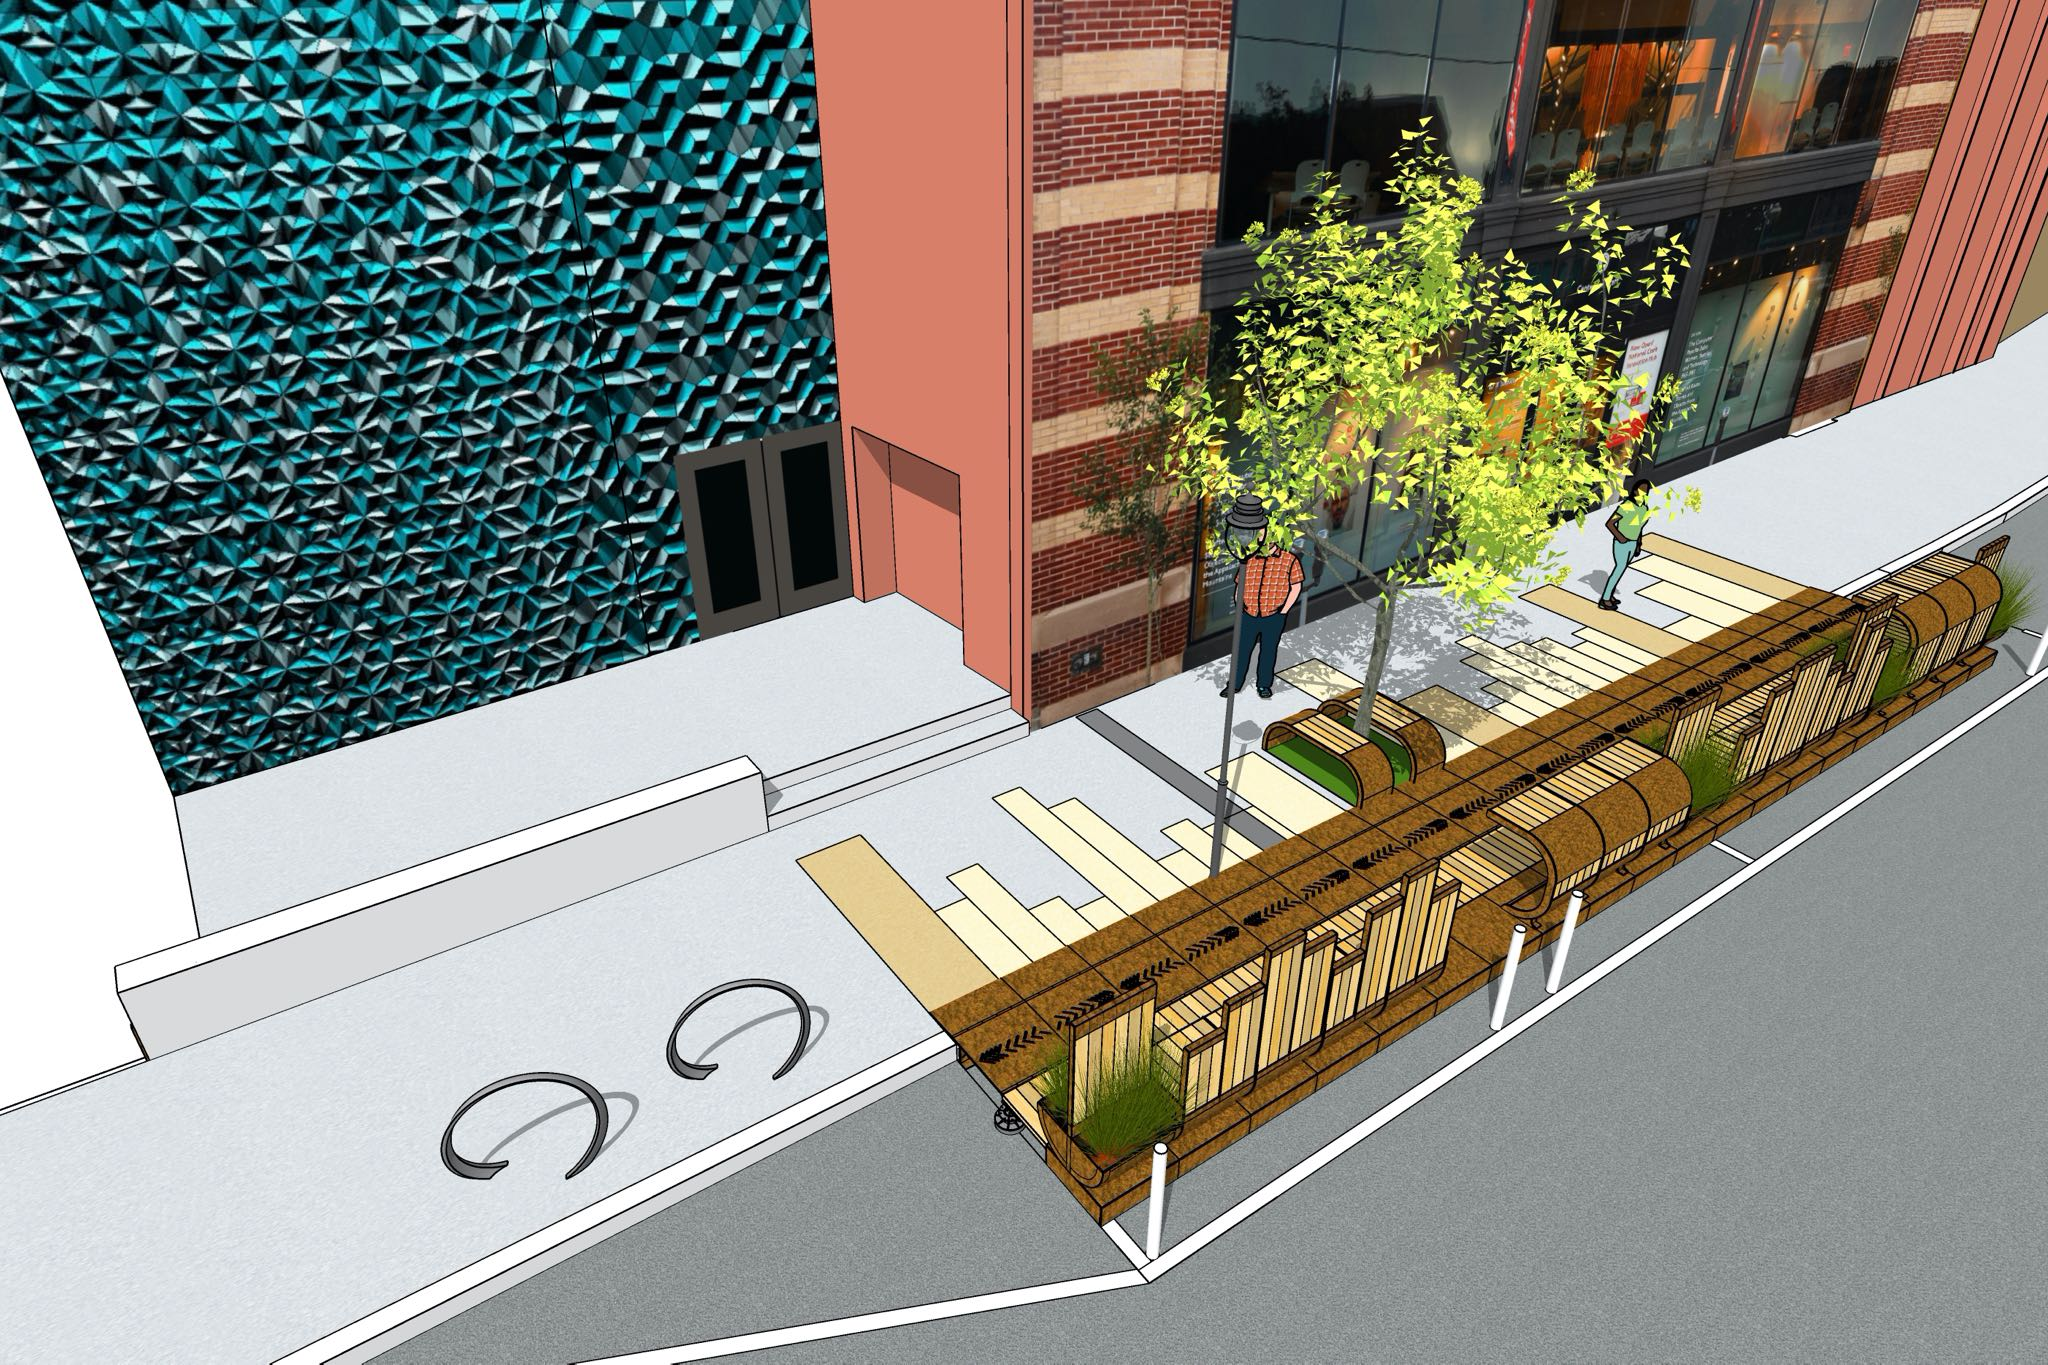 A render of the Cherokee Parklet from above with green bushes, a tree, and white oak planks.